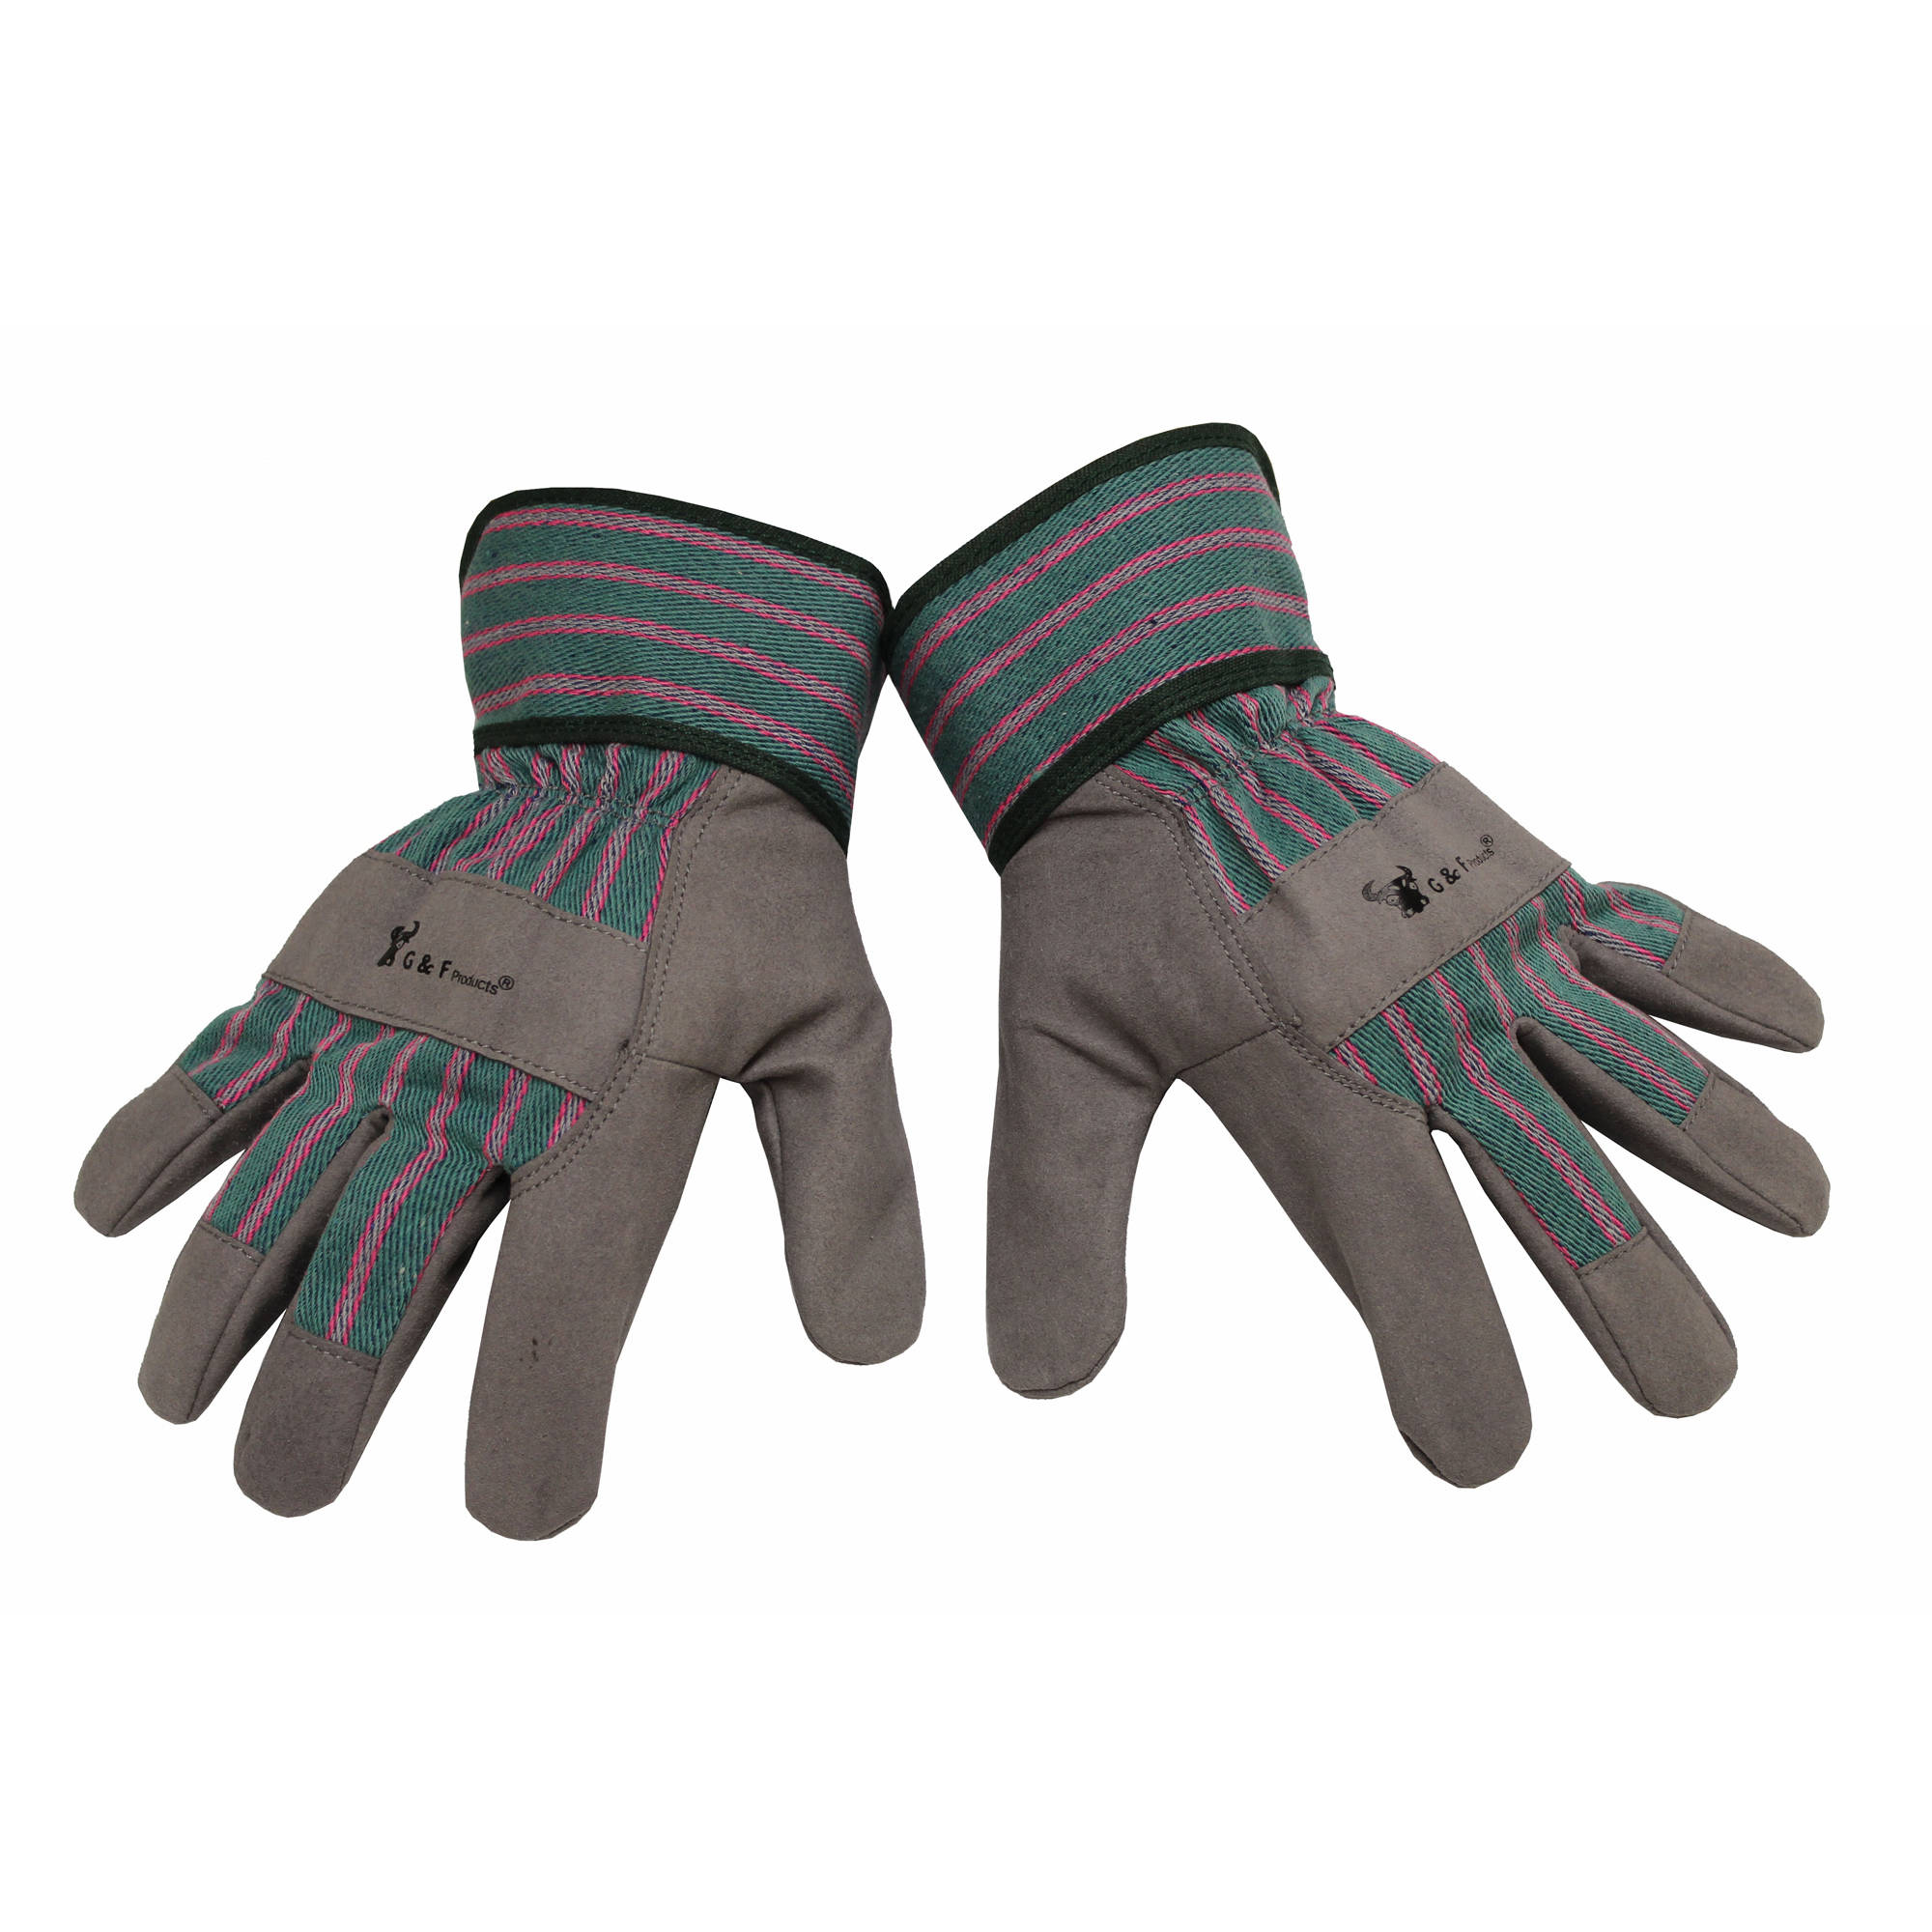 G & F Children's Work Gloves, Gray